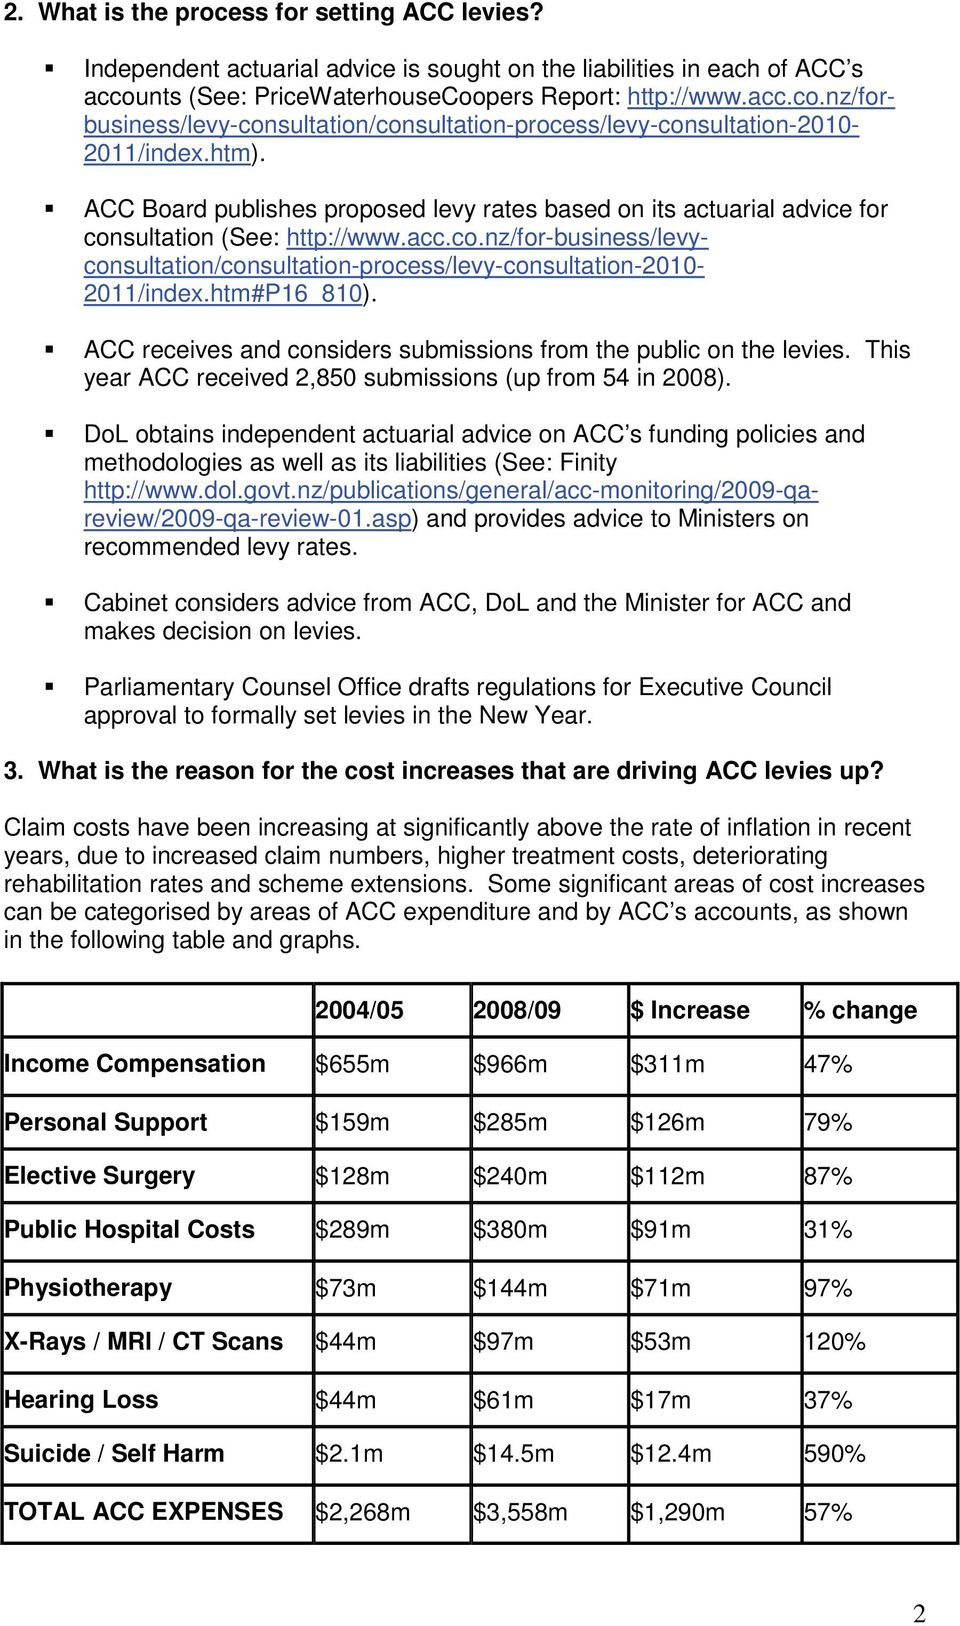 ACC Board publishes proposed levy rates based on its actuarial advice for consultation (See: http://www.acc.co.nz/for-business/levy- consultation/consultation-process/levy-consultation-2010-2011/index.